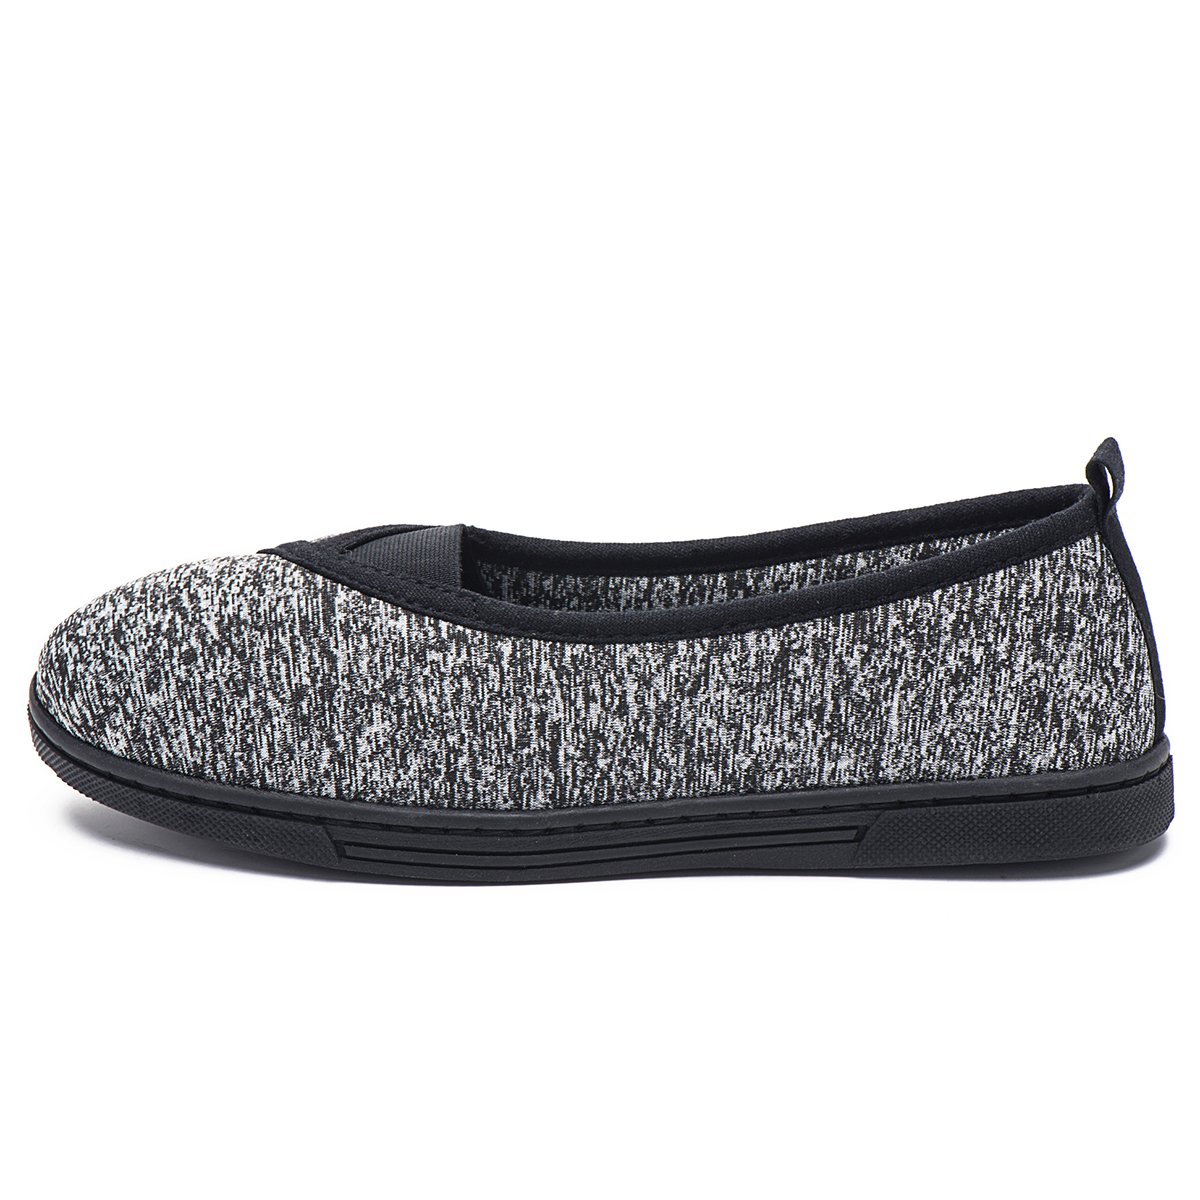 FootTech Women House Slippers Memory Foam Lightweight Anti-Skid Comfort Cotton Home Shoes Designed by (US7-8, Black)